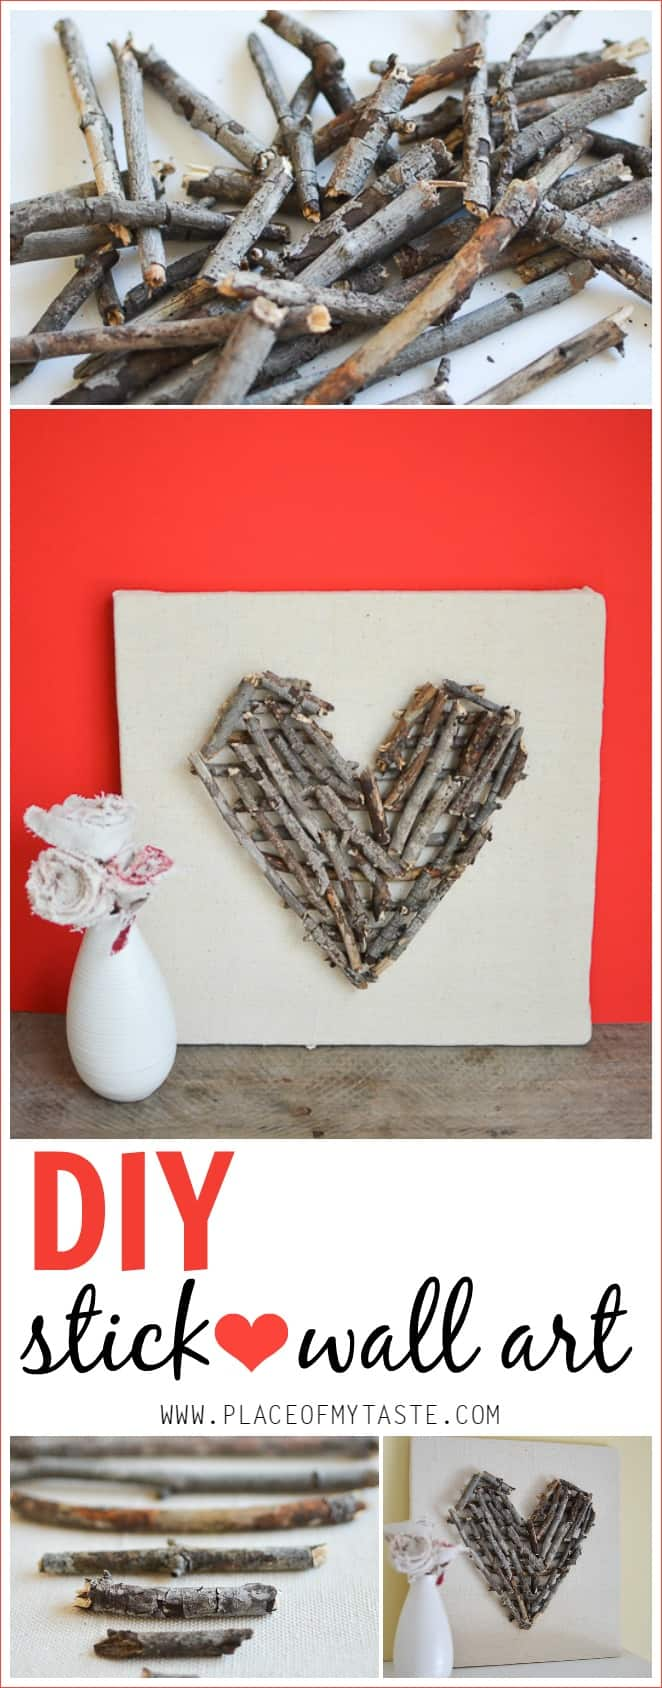 DIY STICK WALL ART-Placeofmytaste.com